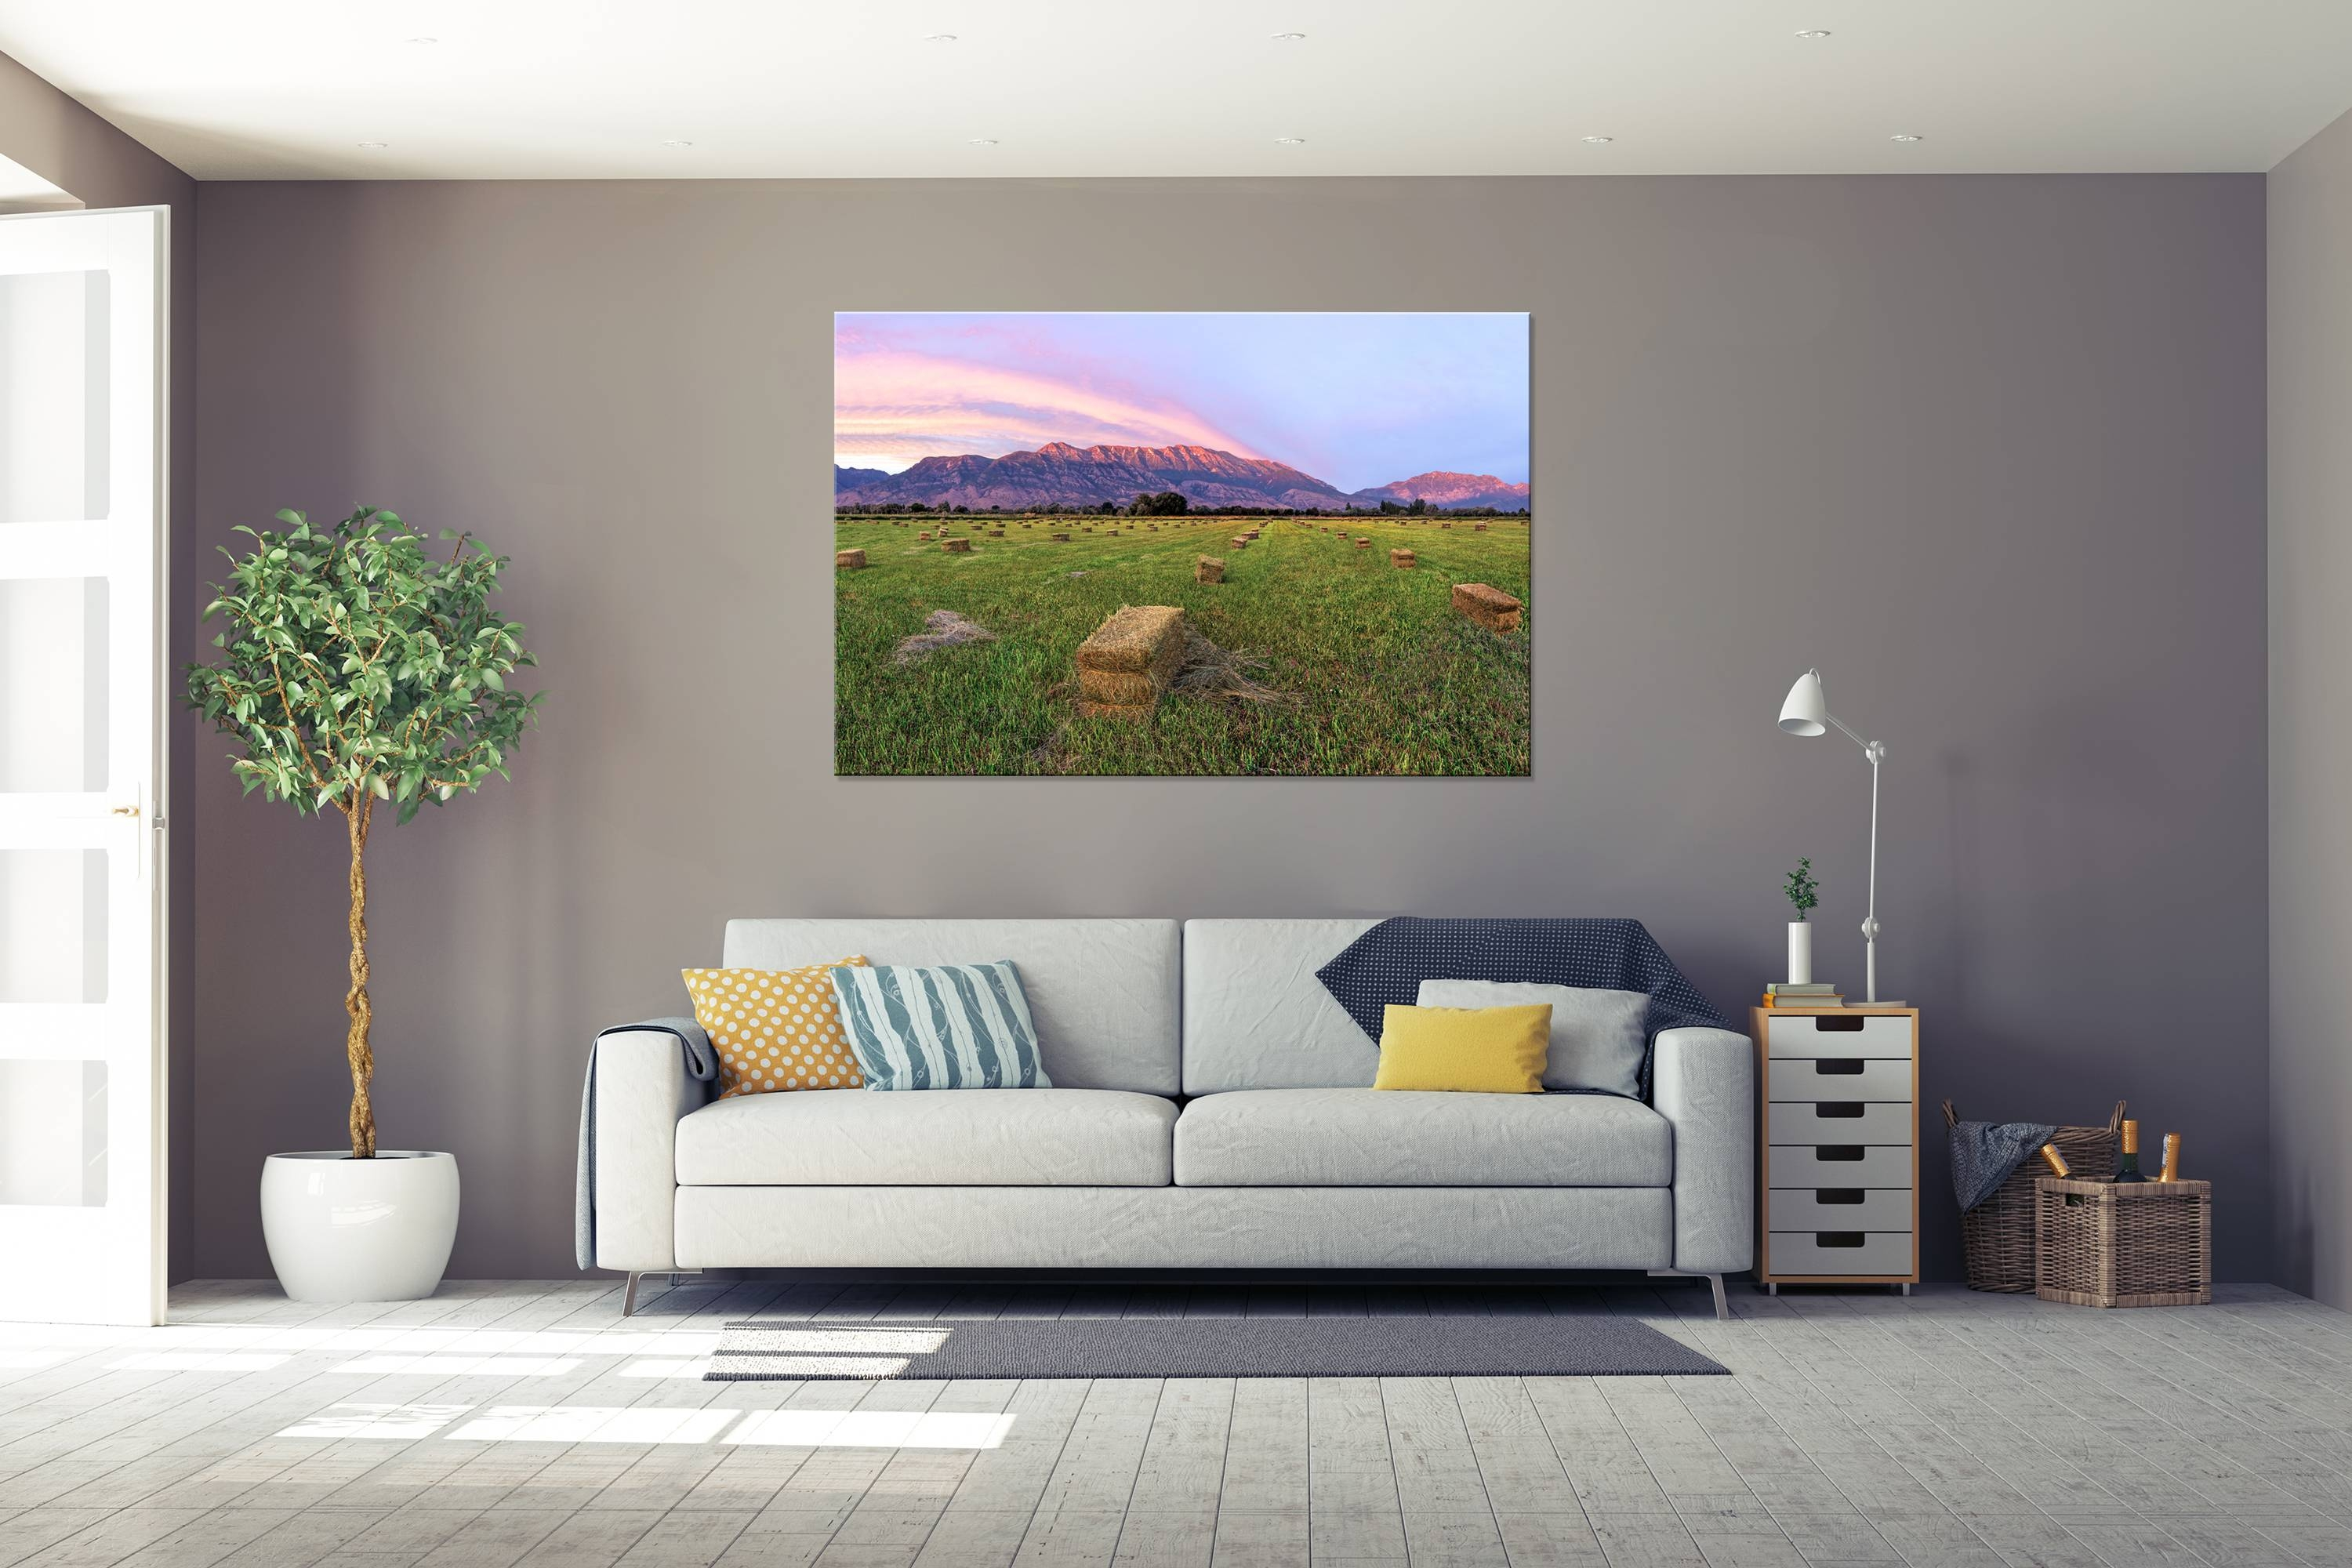 Timpanogos Farm – Rogue Aurora Photography Intended For Best And Newest Photography Wall Art (View 18 of 25)